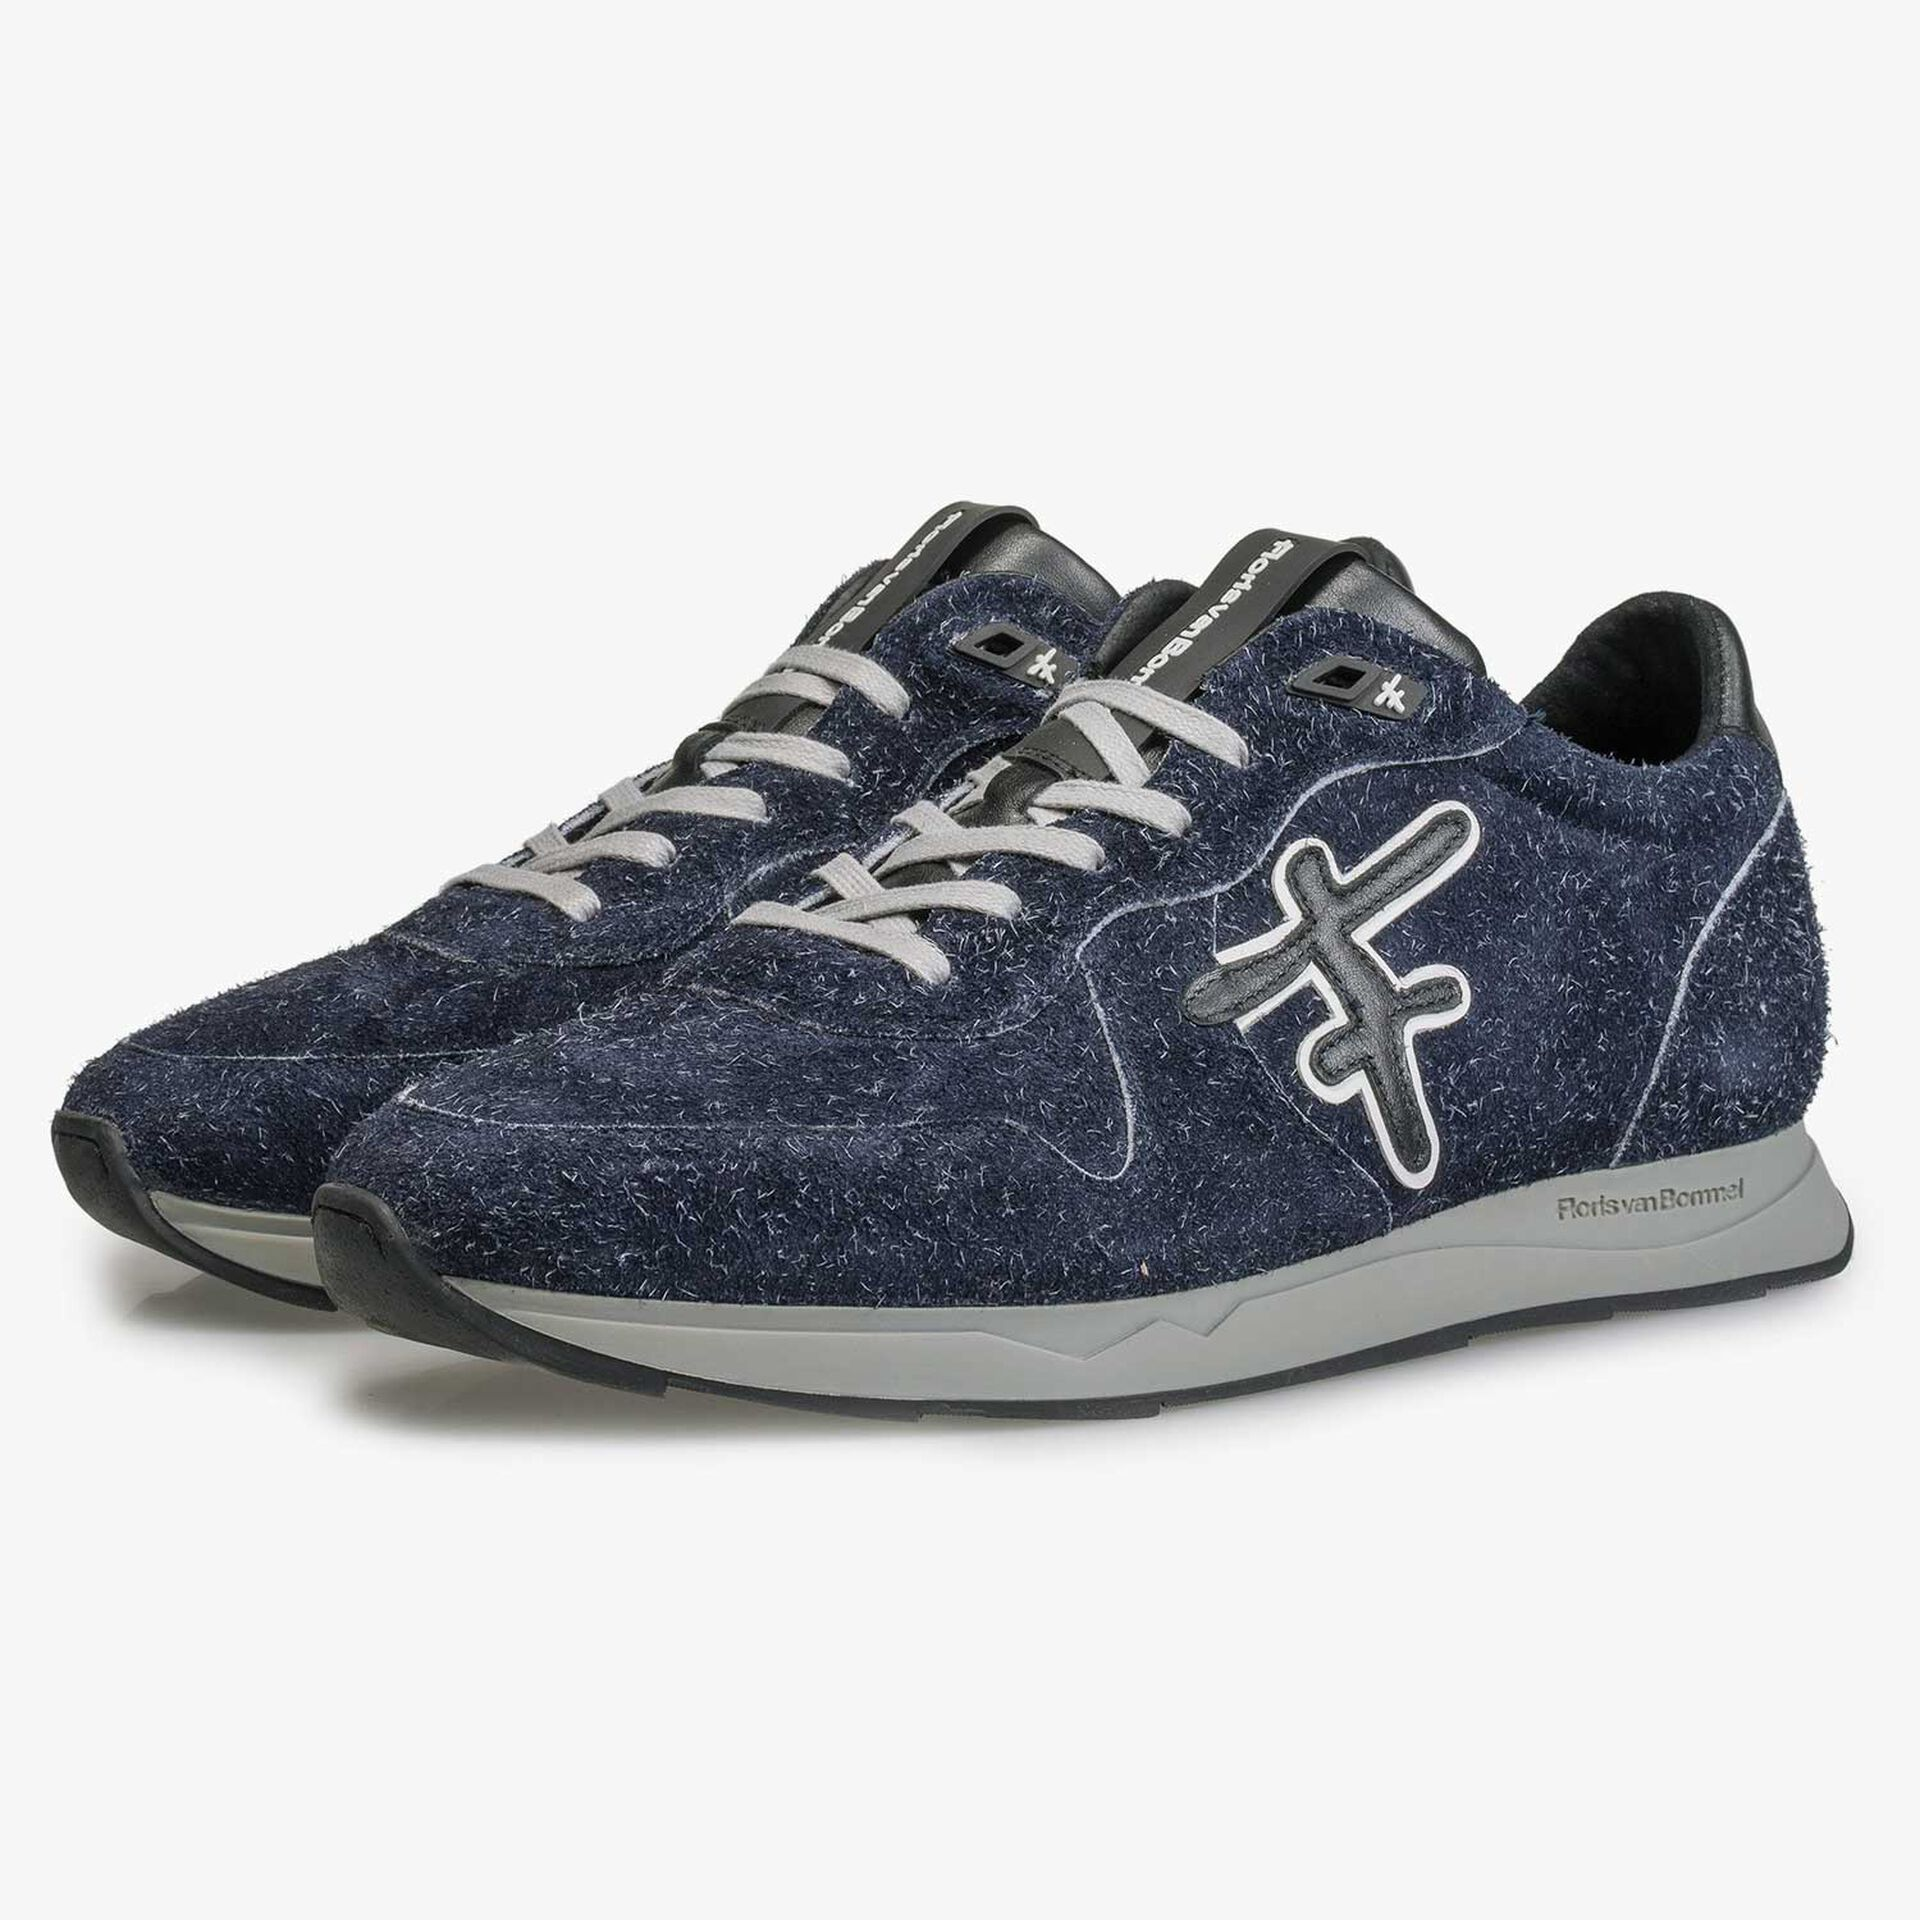 Blue Sneaker made of rough-haired suede leather